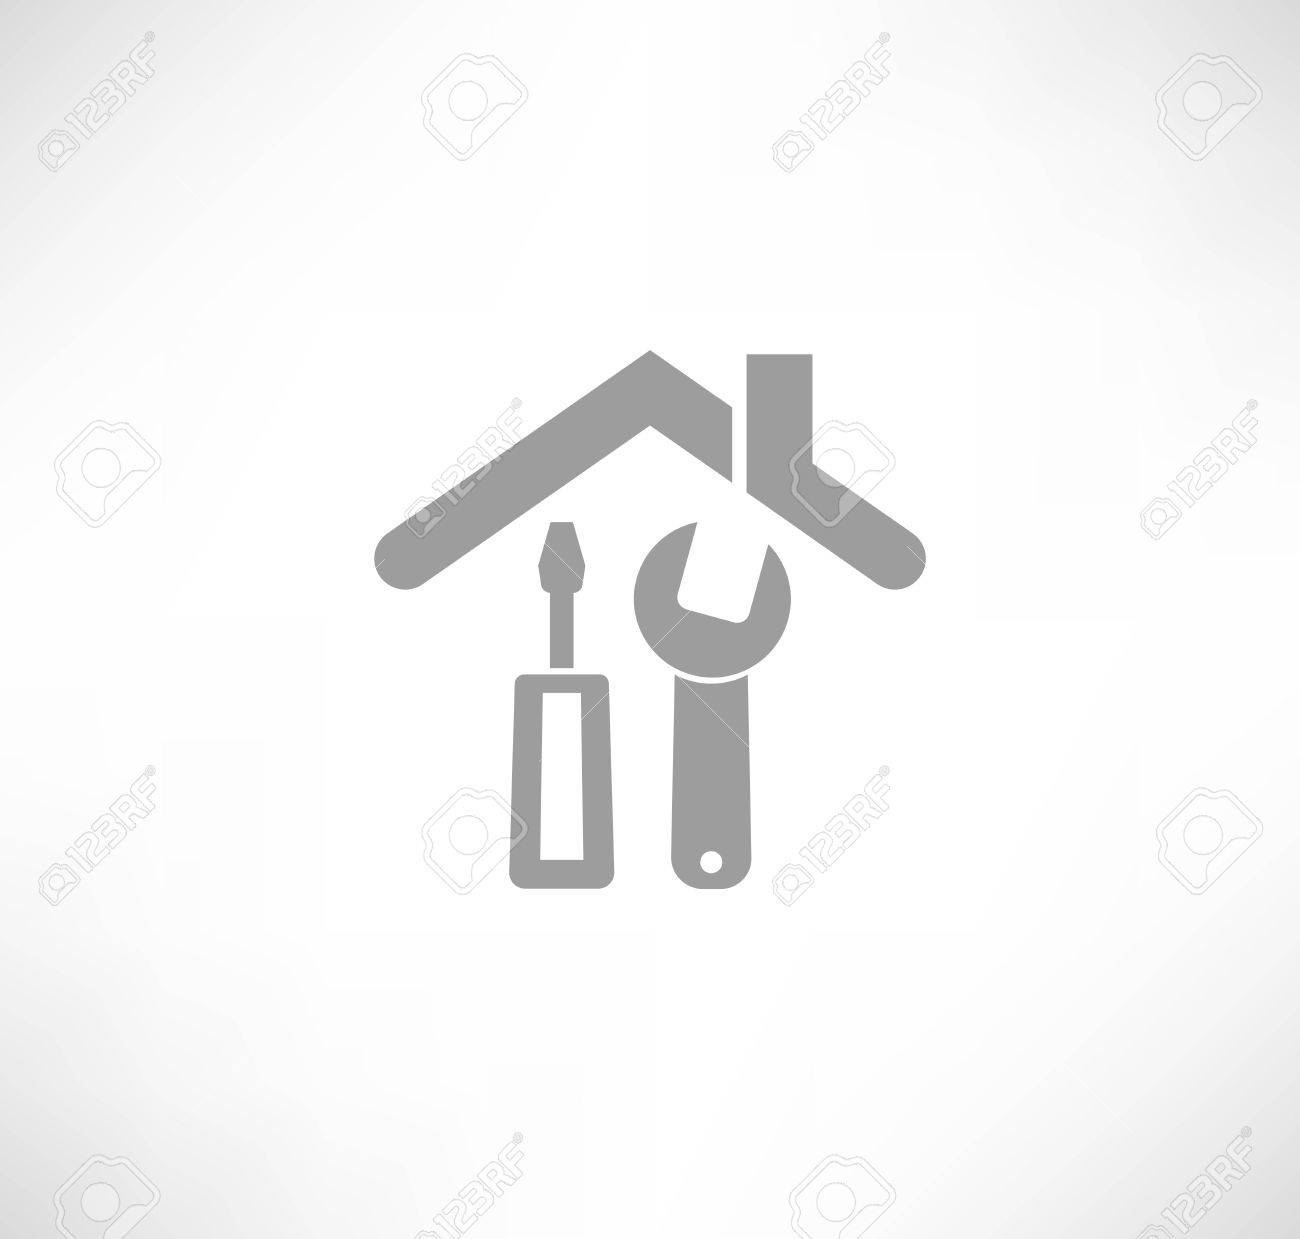 Home repair icon Stock Vector - 22798311